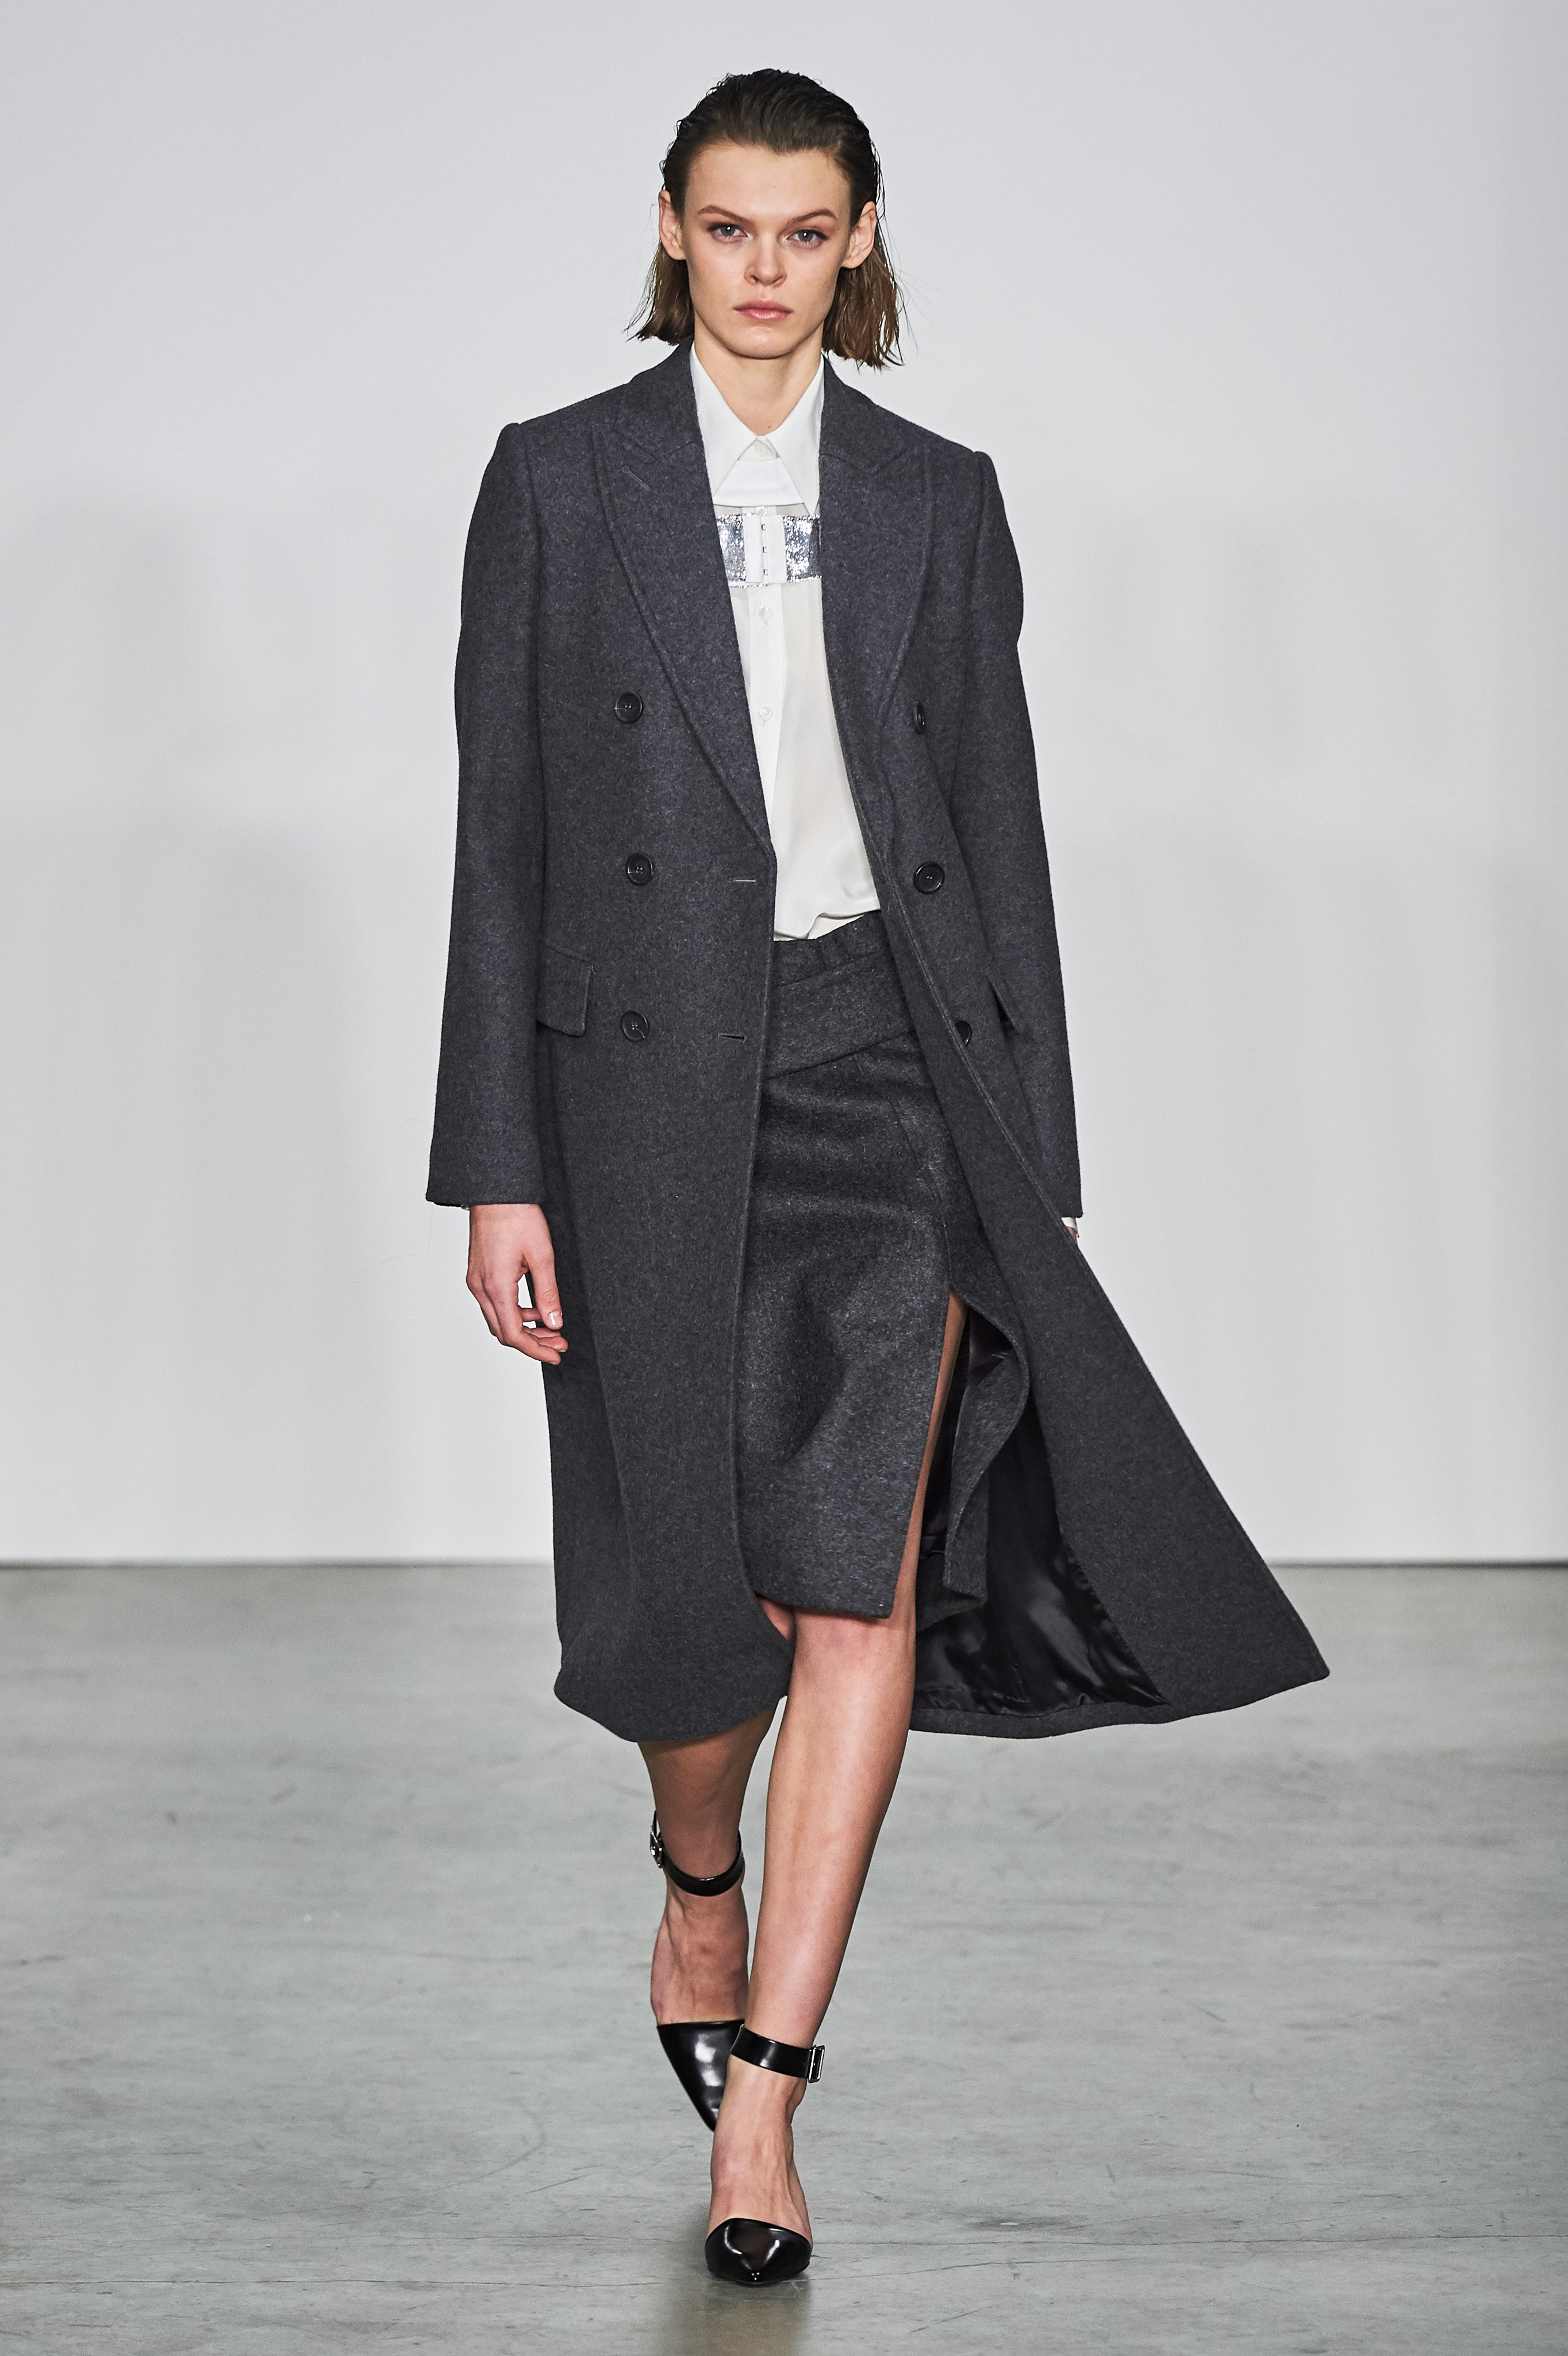 Helmut Lang Reinvents the Suit for Fall 2019 | V Magazine